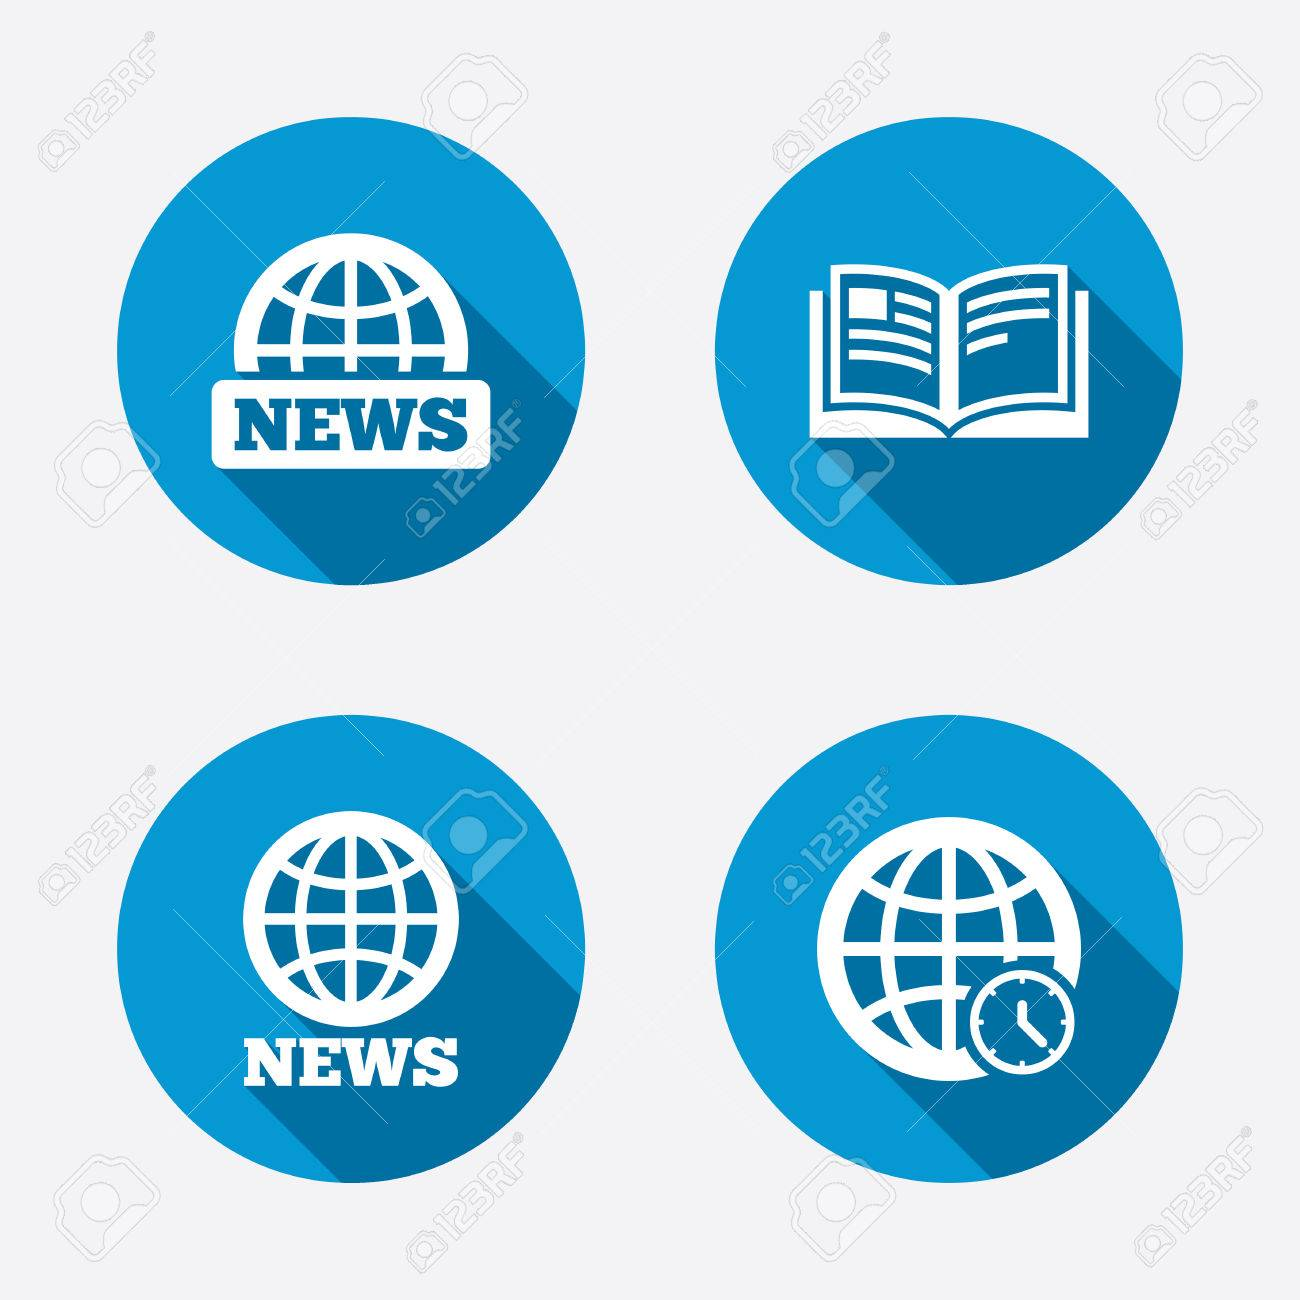 what is a symbol in literature essays meaning literature symbol of  news icons world globe symbols open book sign education world globe symbols open book sign education